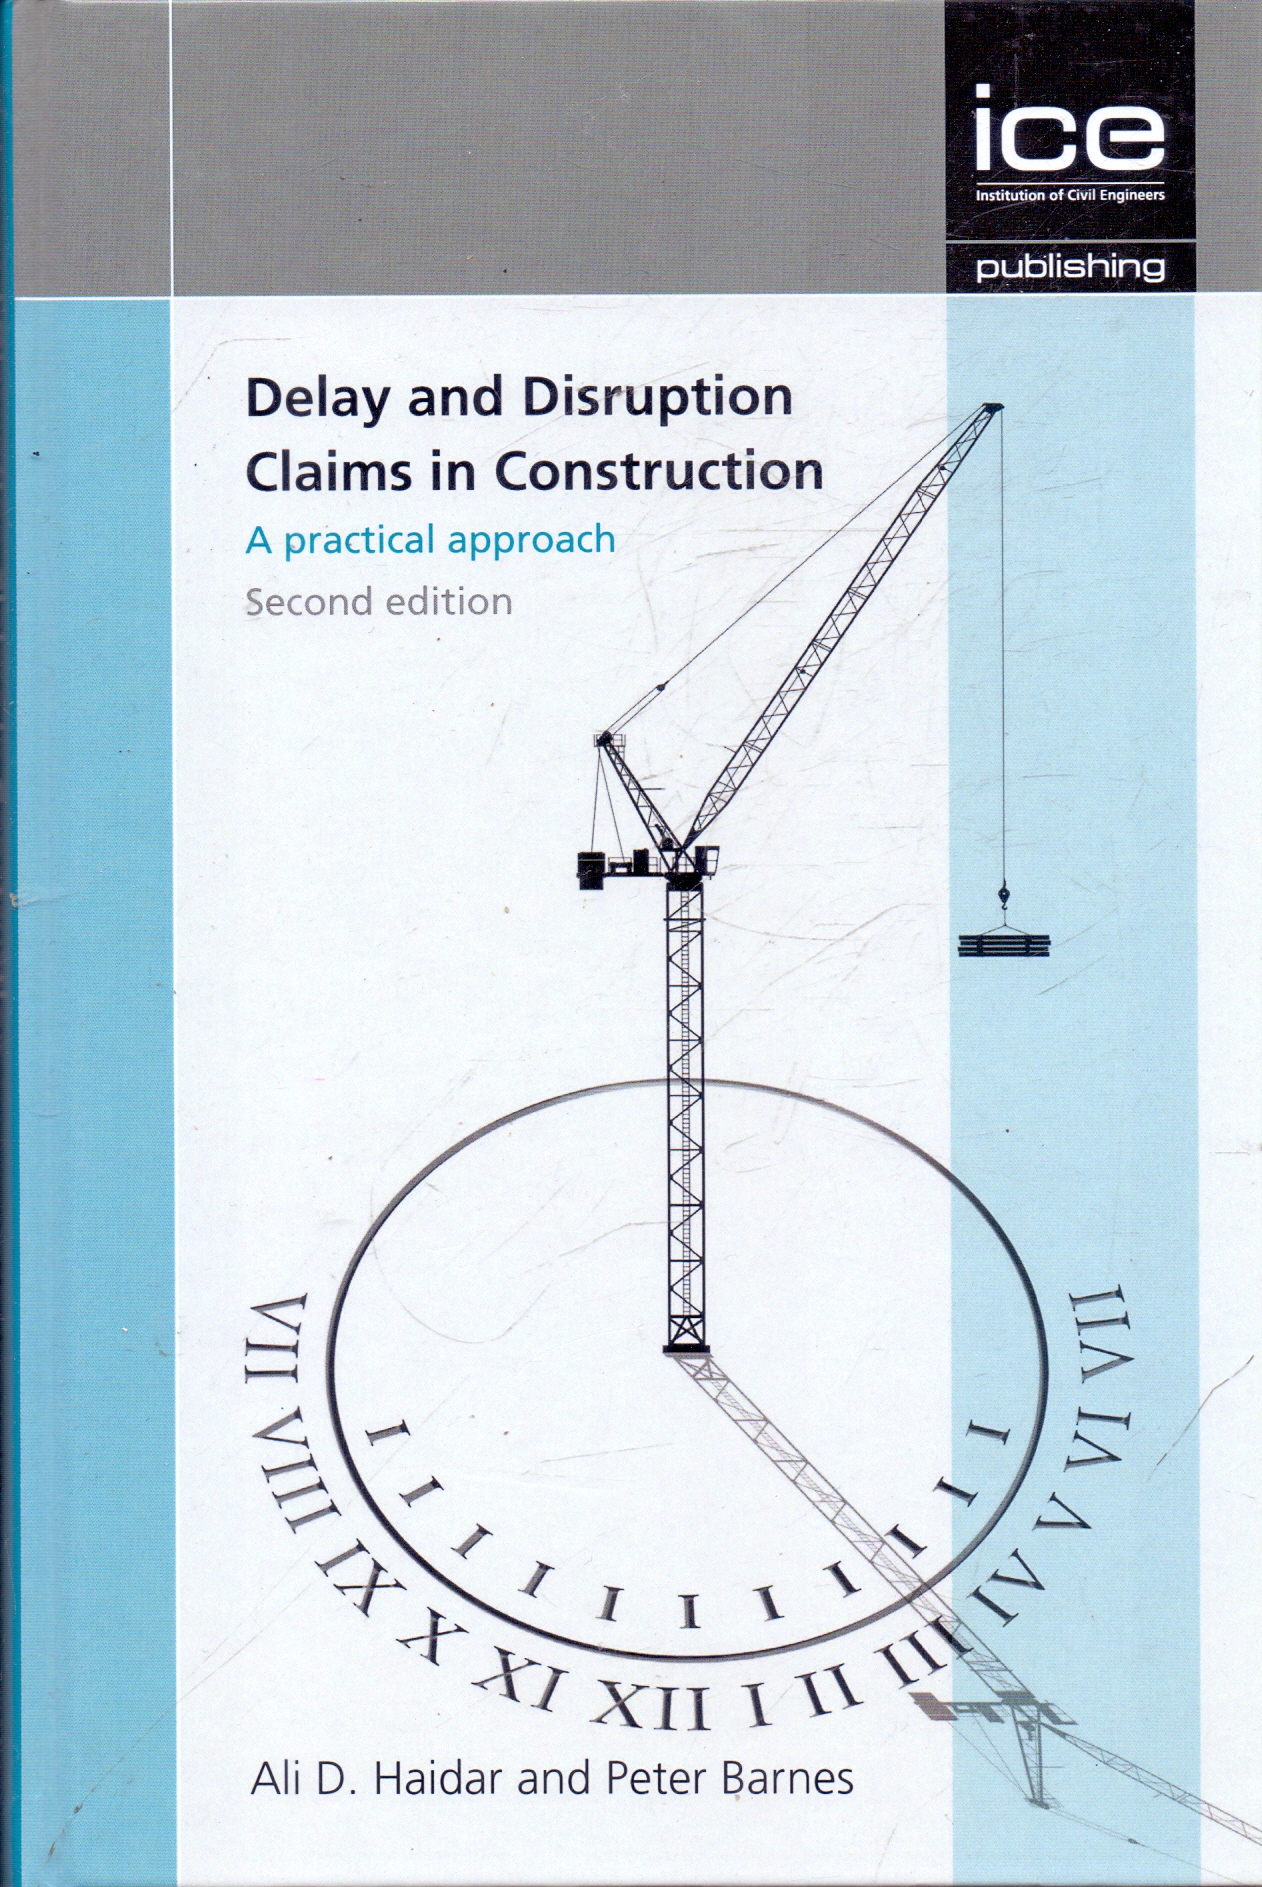 Delay and Disruption Claims in Construction